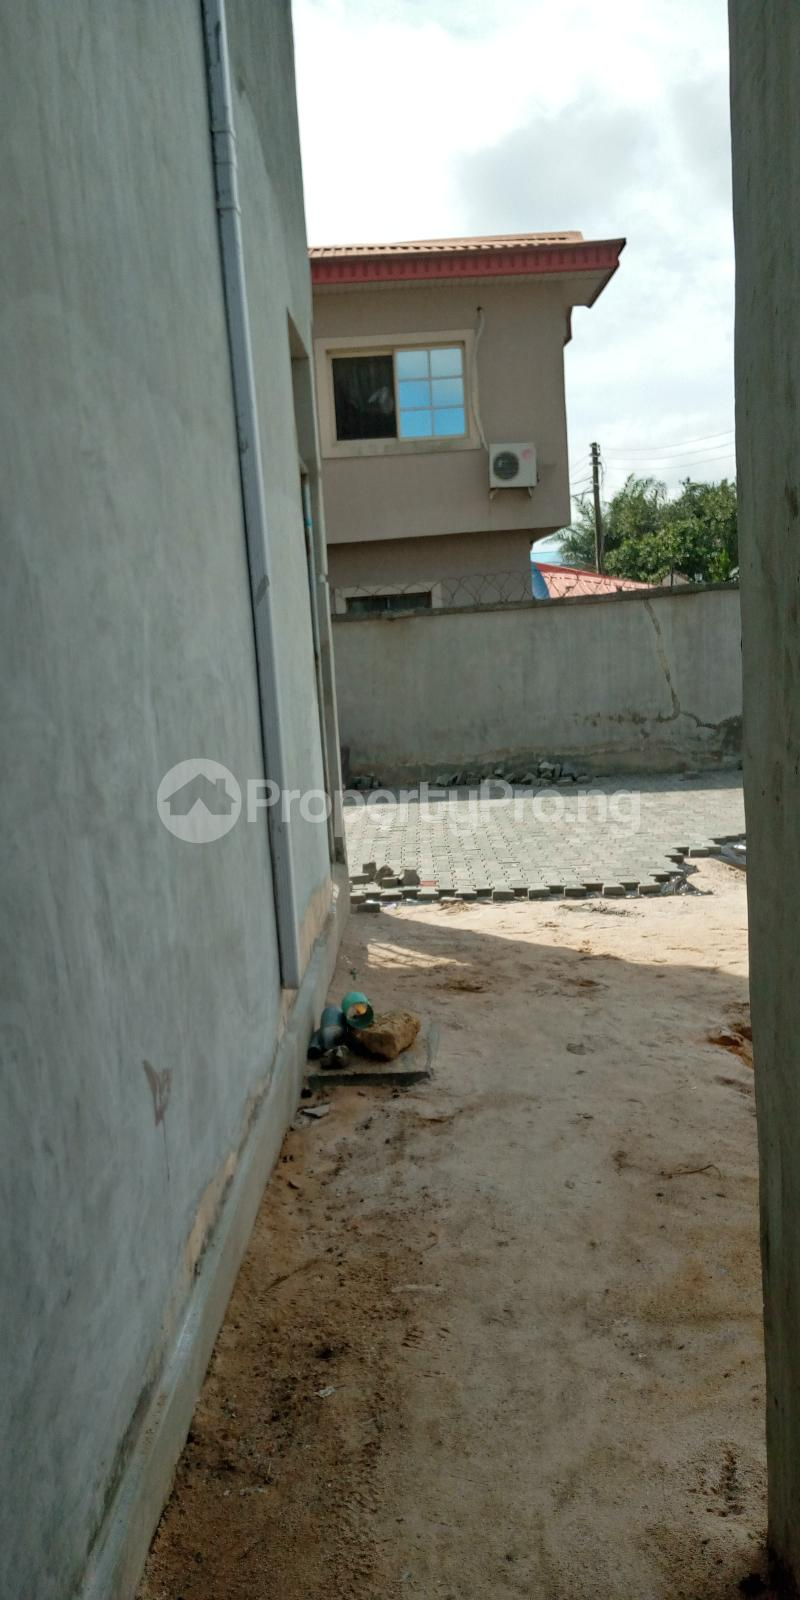 School Commercial Property for sale Eputu Ibeju-Lekki Lagos - 9